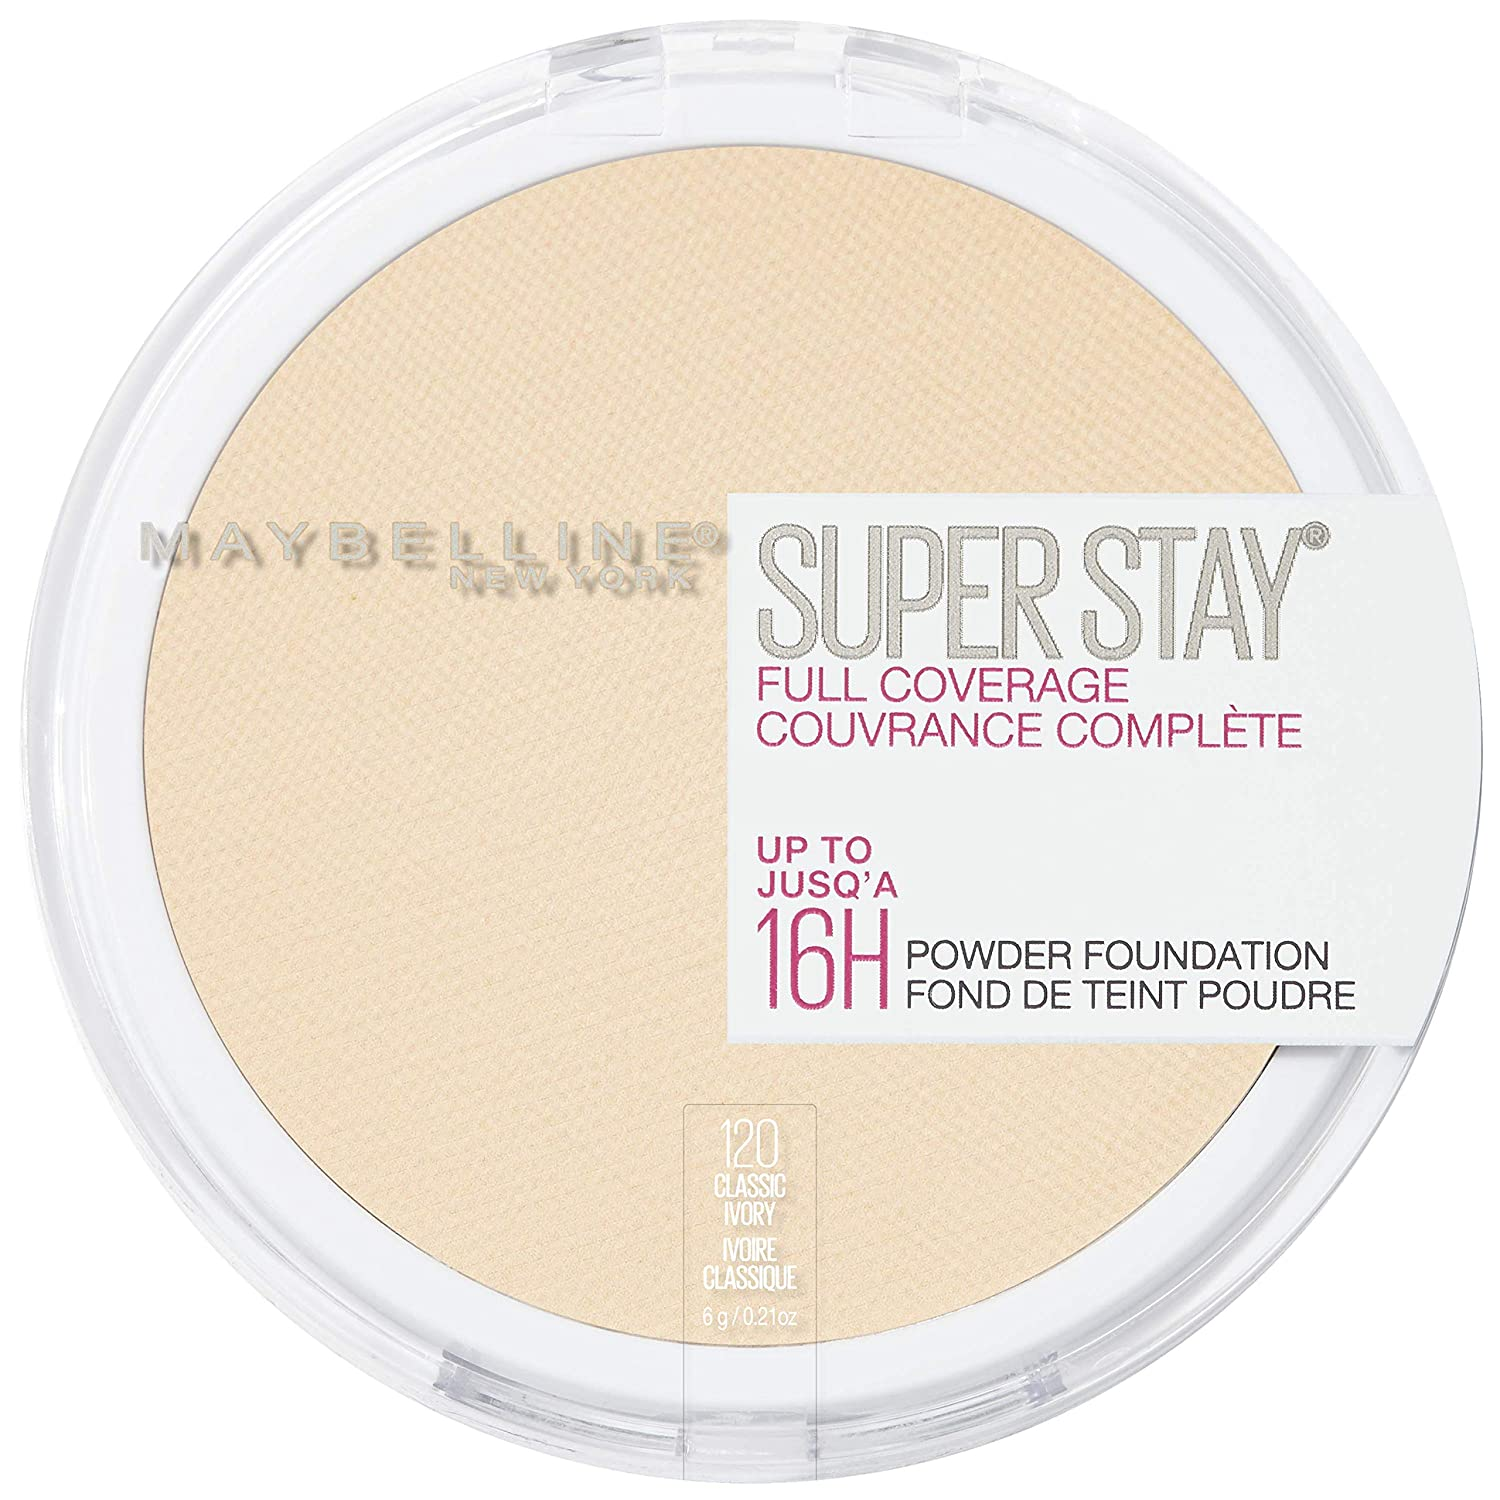 Maybelline New York Super Stay Full Coverage Powder Foundation Reviews